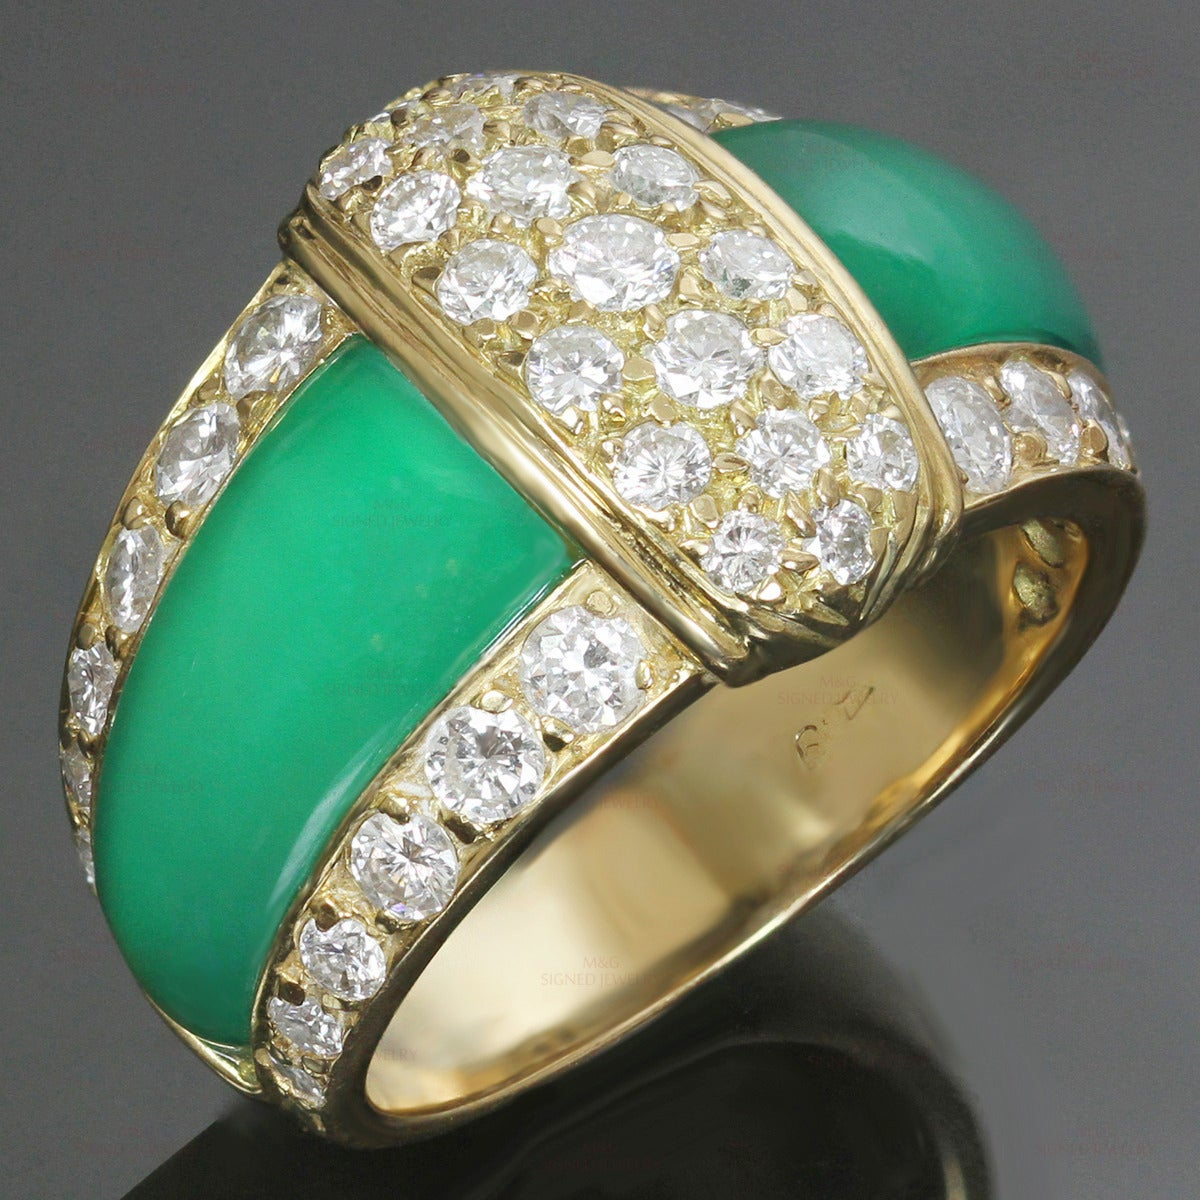 This stunning Van Cleef & Arpels ring features vibrant green chrysoprase inlays set in 18k yellow gold and beautifully accented with sparkling round brilliant-cut E-F VVS1-VVS2 diamonds of an estimated 1.38 carats. Circa 1988. 